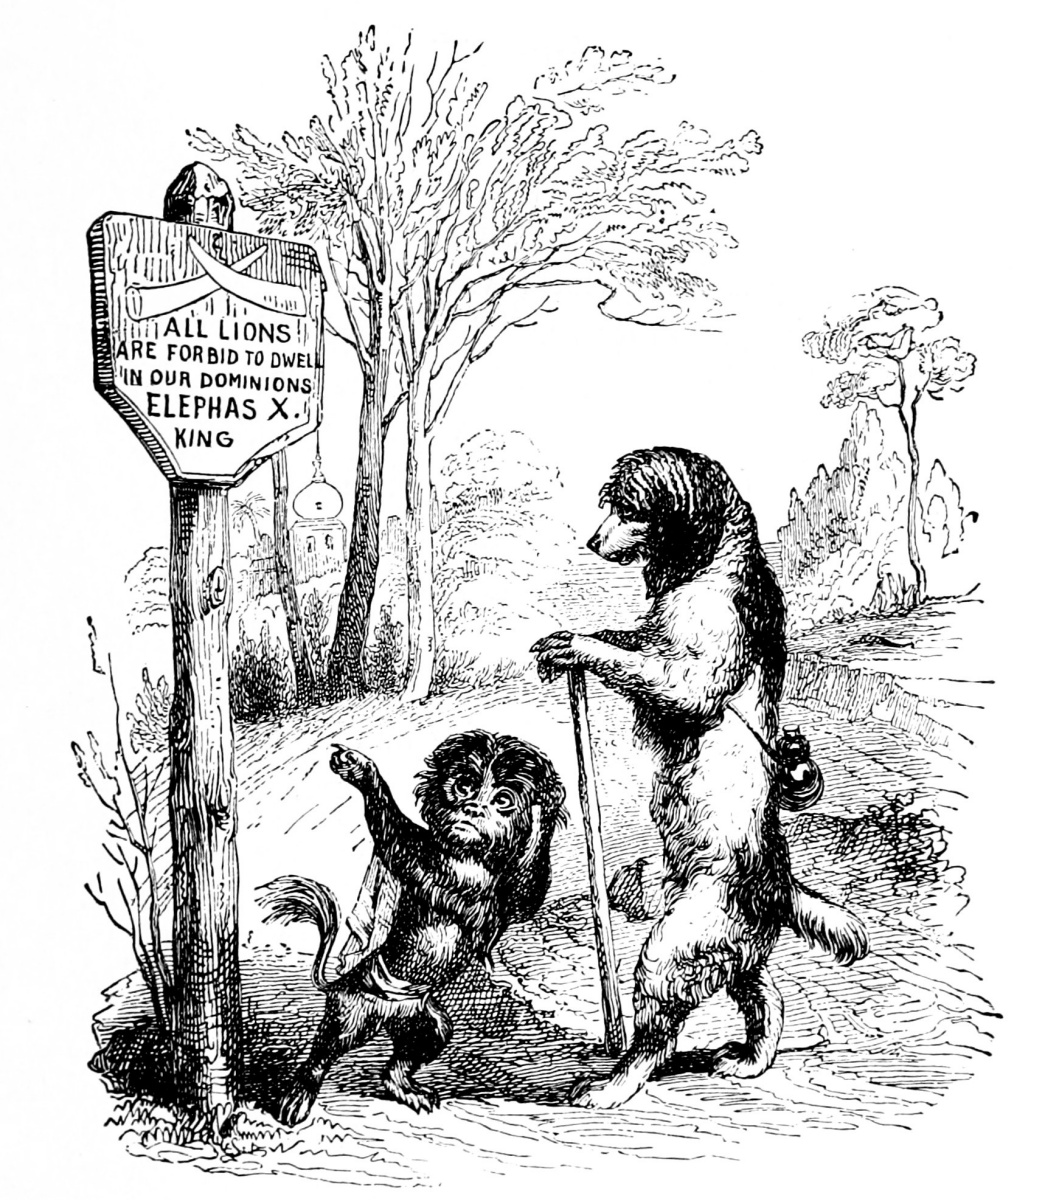 Jean Inias Isidore (Gerard) Granville. The exiled poodle. Illustrations to the fables of Florian